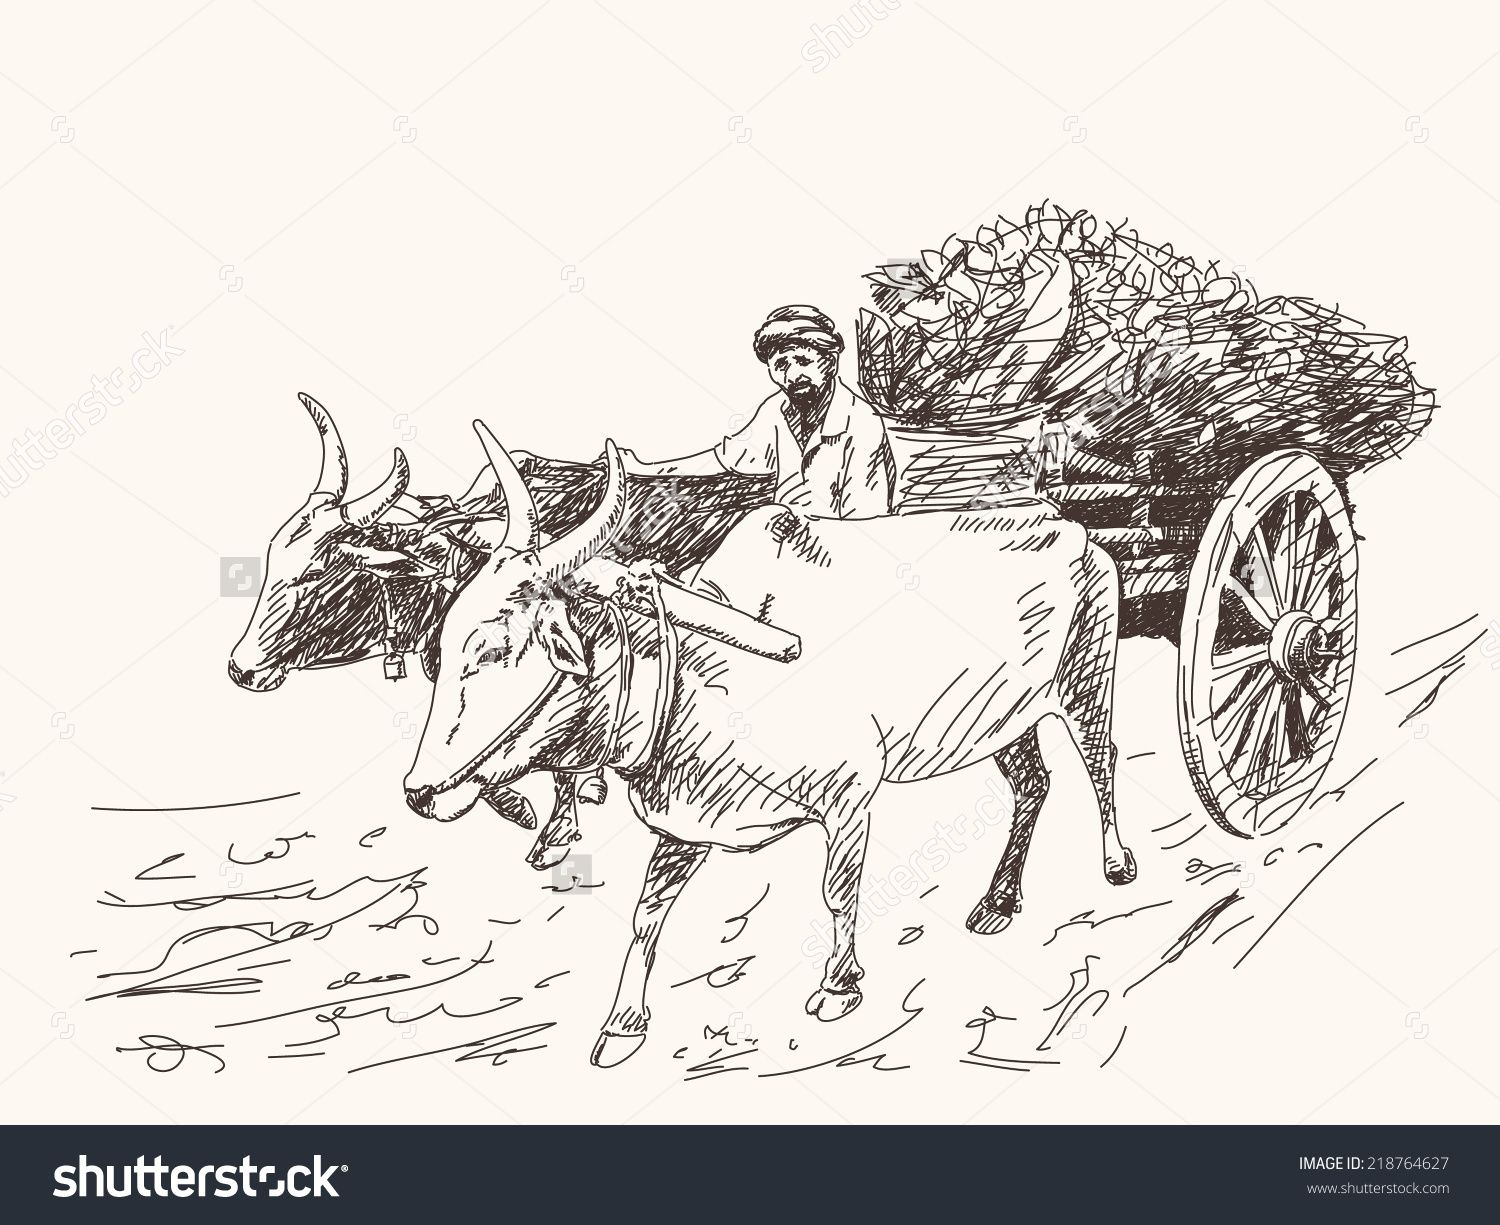 Farmer paintings search result. Wagon clipart oxcart